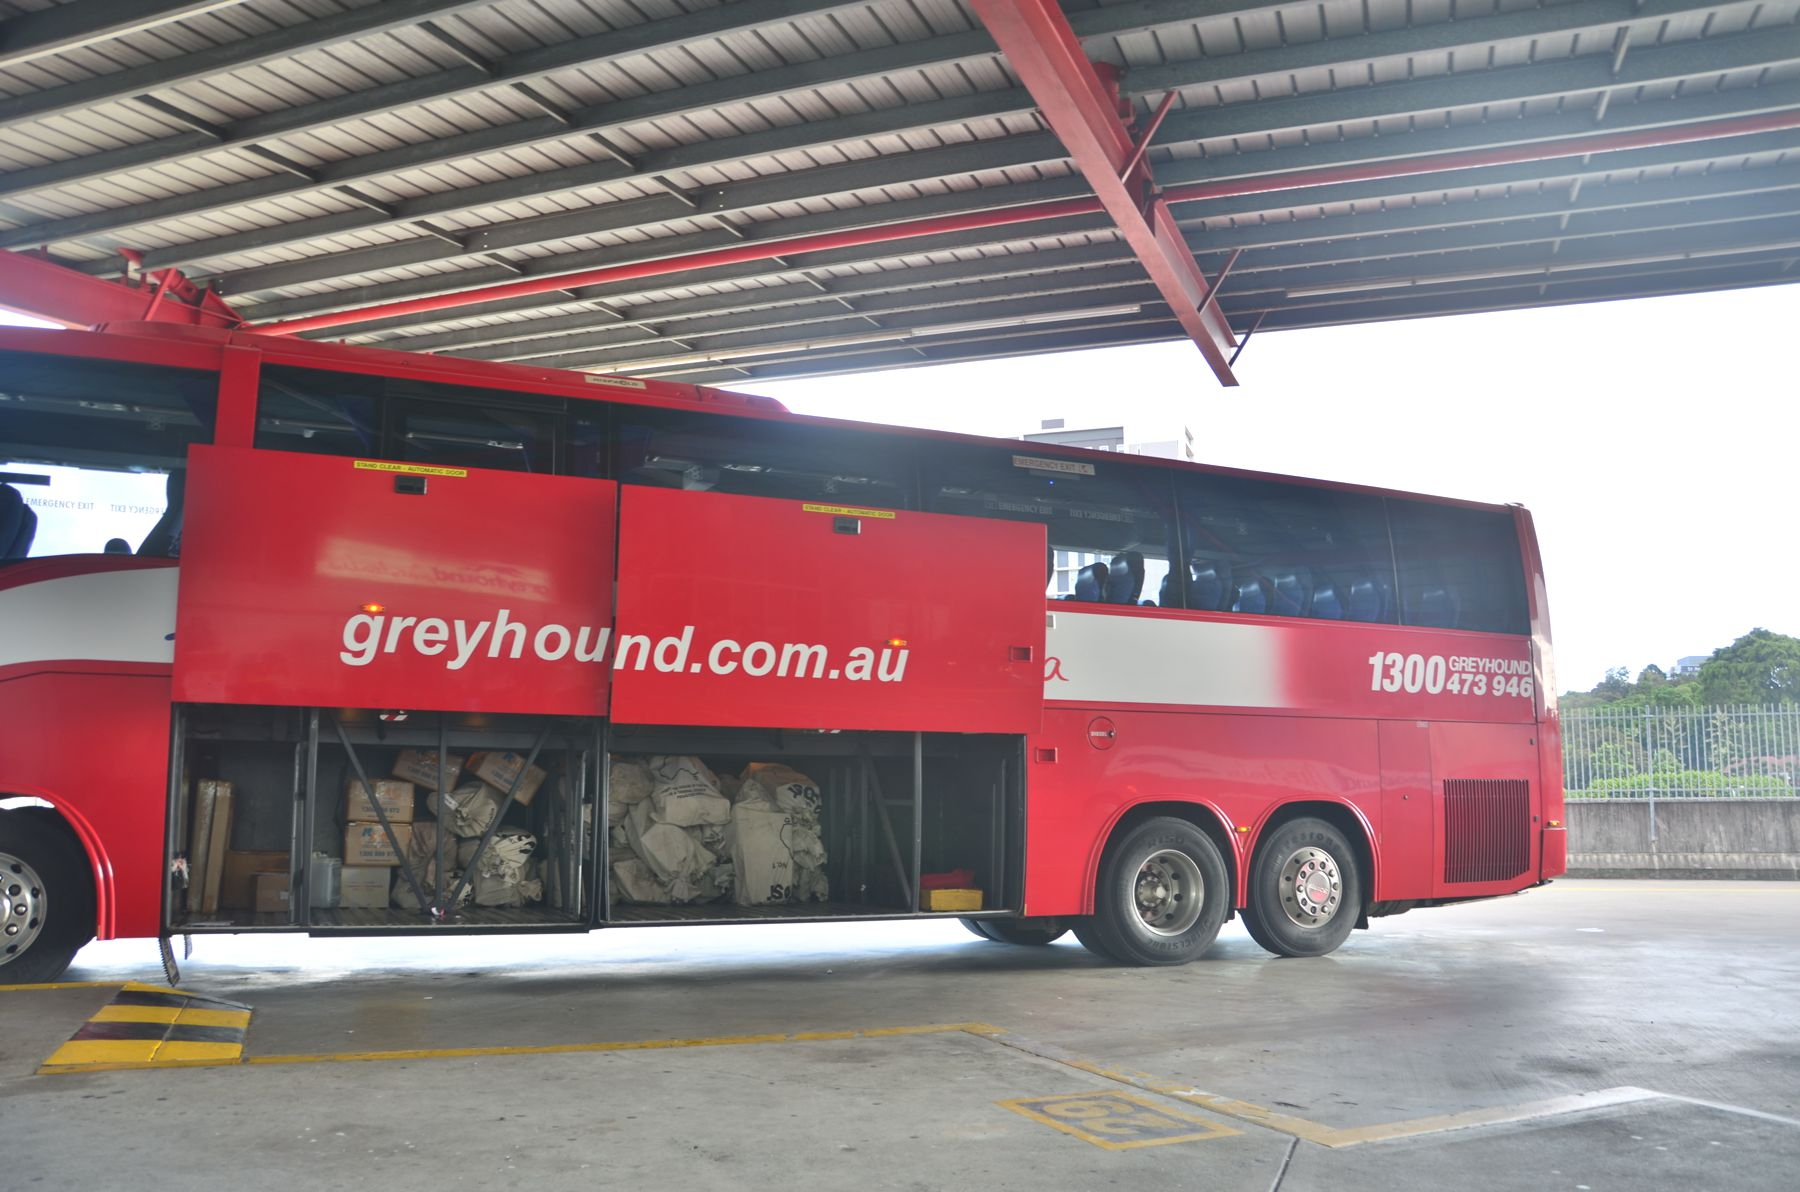 DSC 1326 Travel Australia Cheaply Via Greyhound Bus